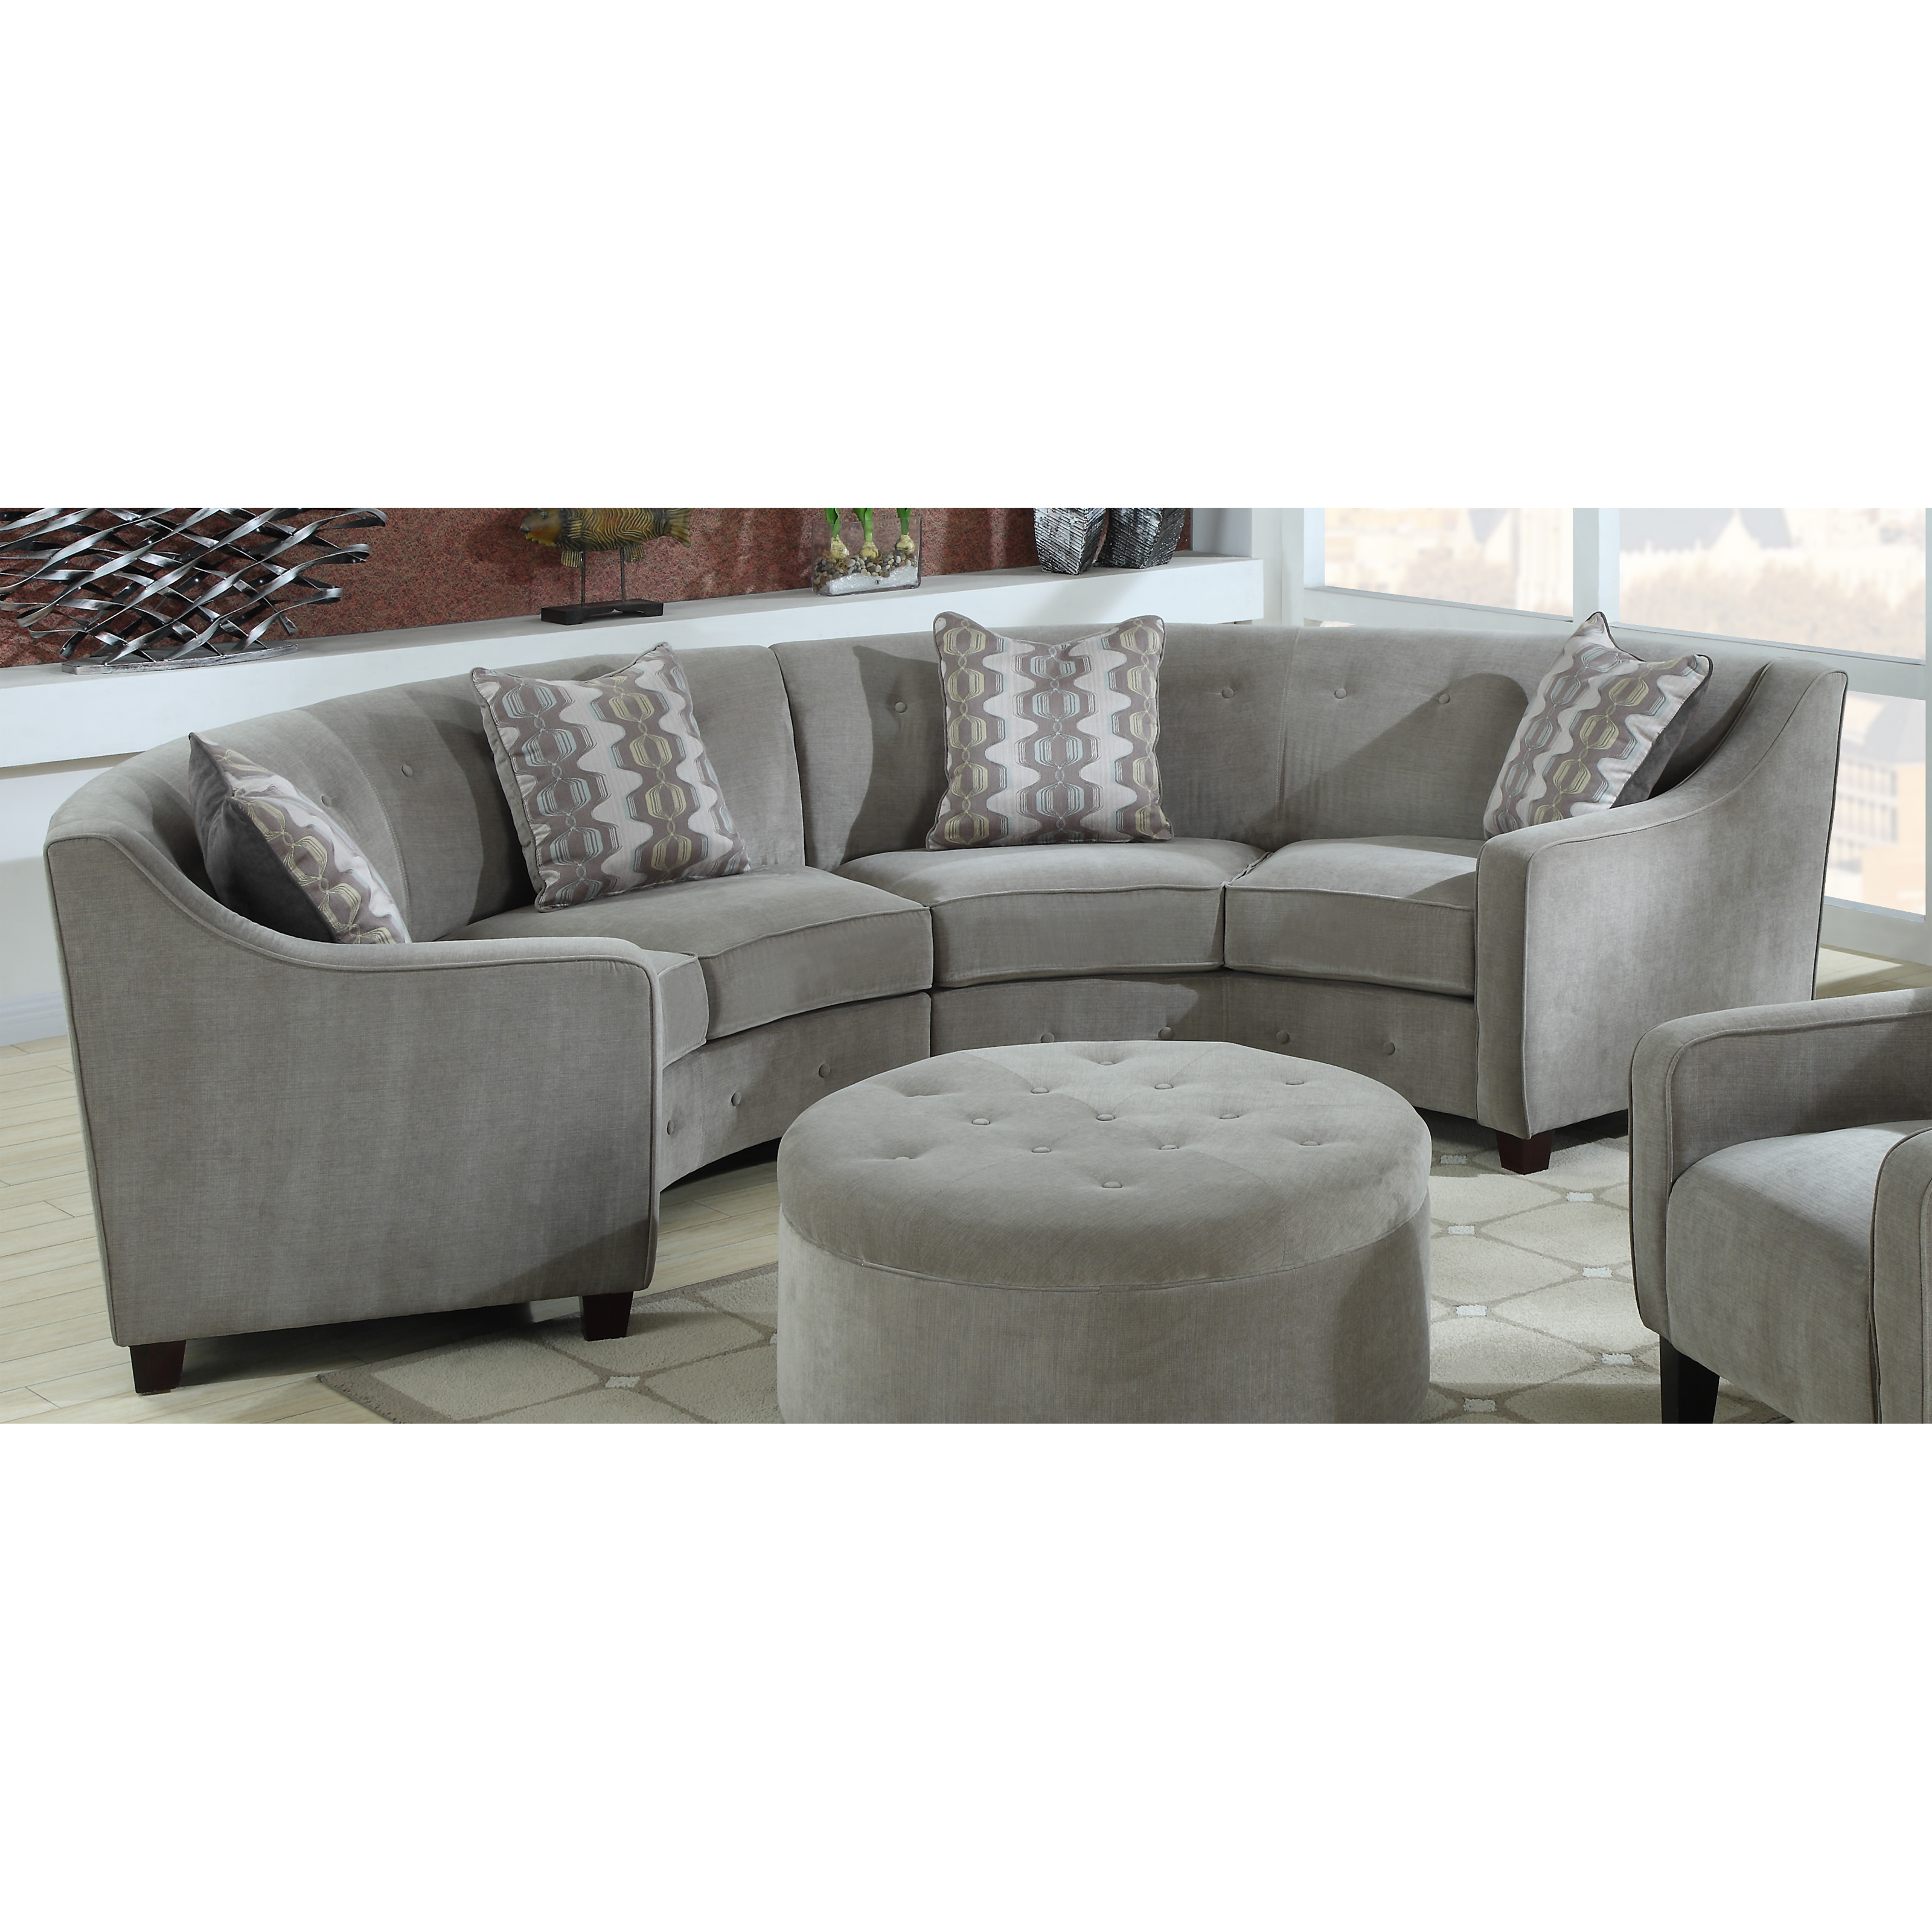 Emerald Home Channing Sectional Tranquil Silver At Hayneedle